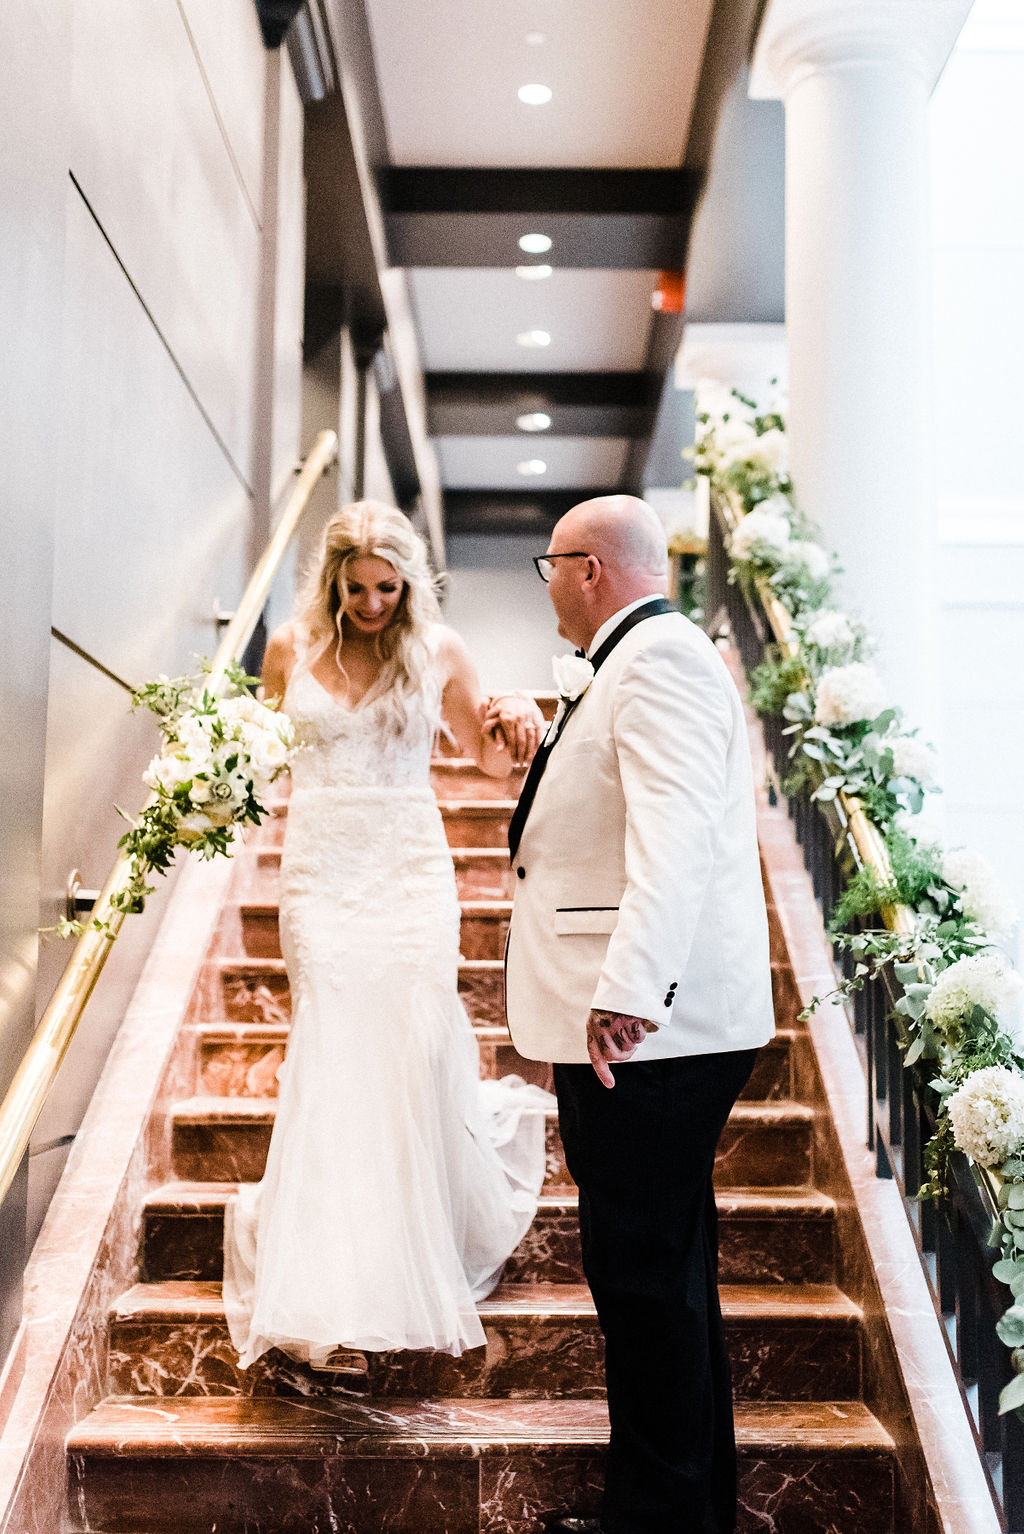 Tyler helps his new bride down the stairs at The Goodwin Hotel on their wedding day - Pearl Weddings & Events